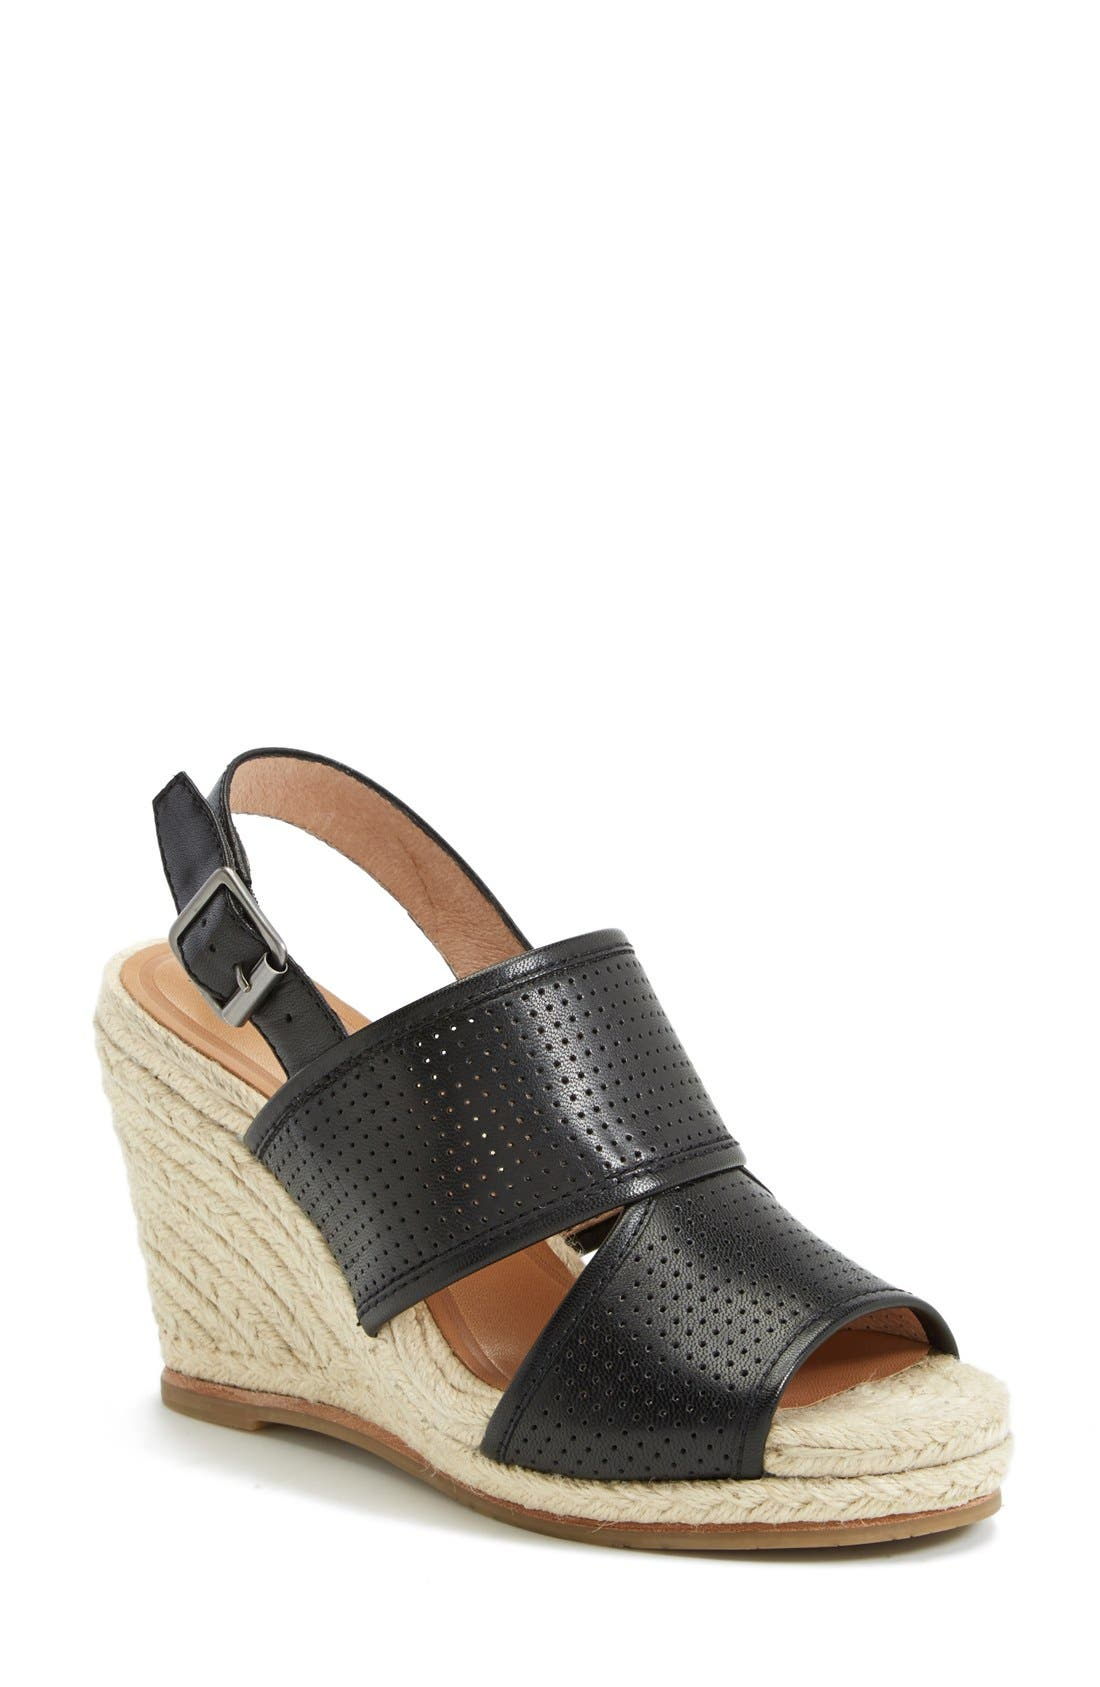 'Joyce' Perforated Espadrille Wedge Sandal,                         Main,                         color, 001